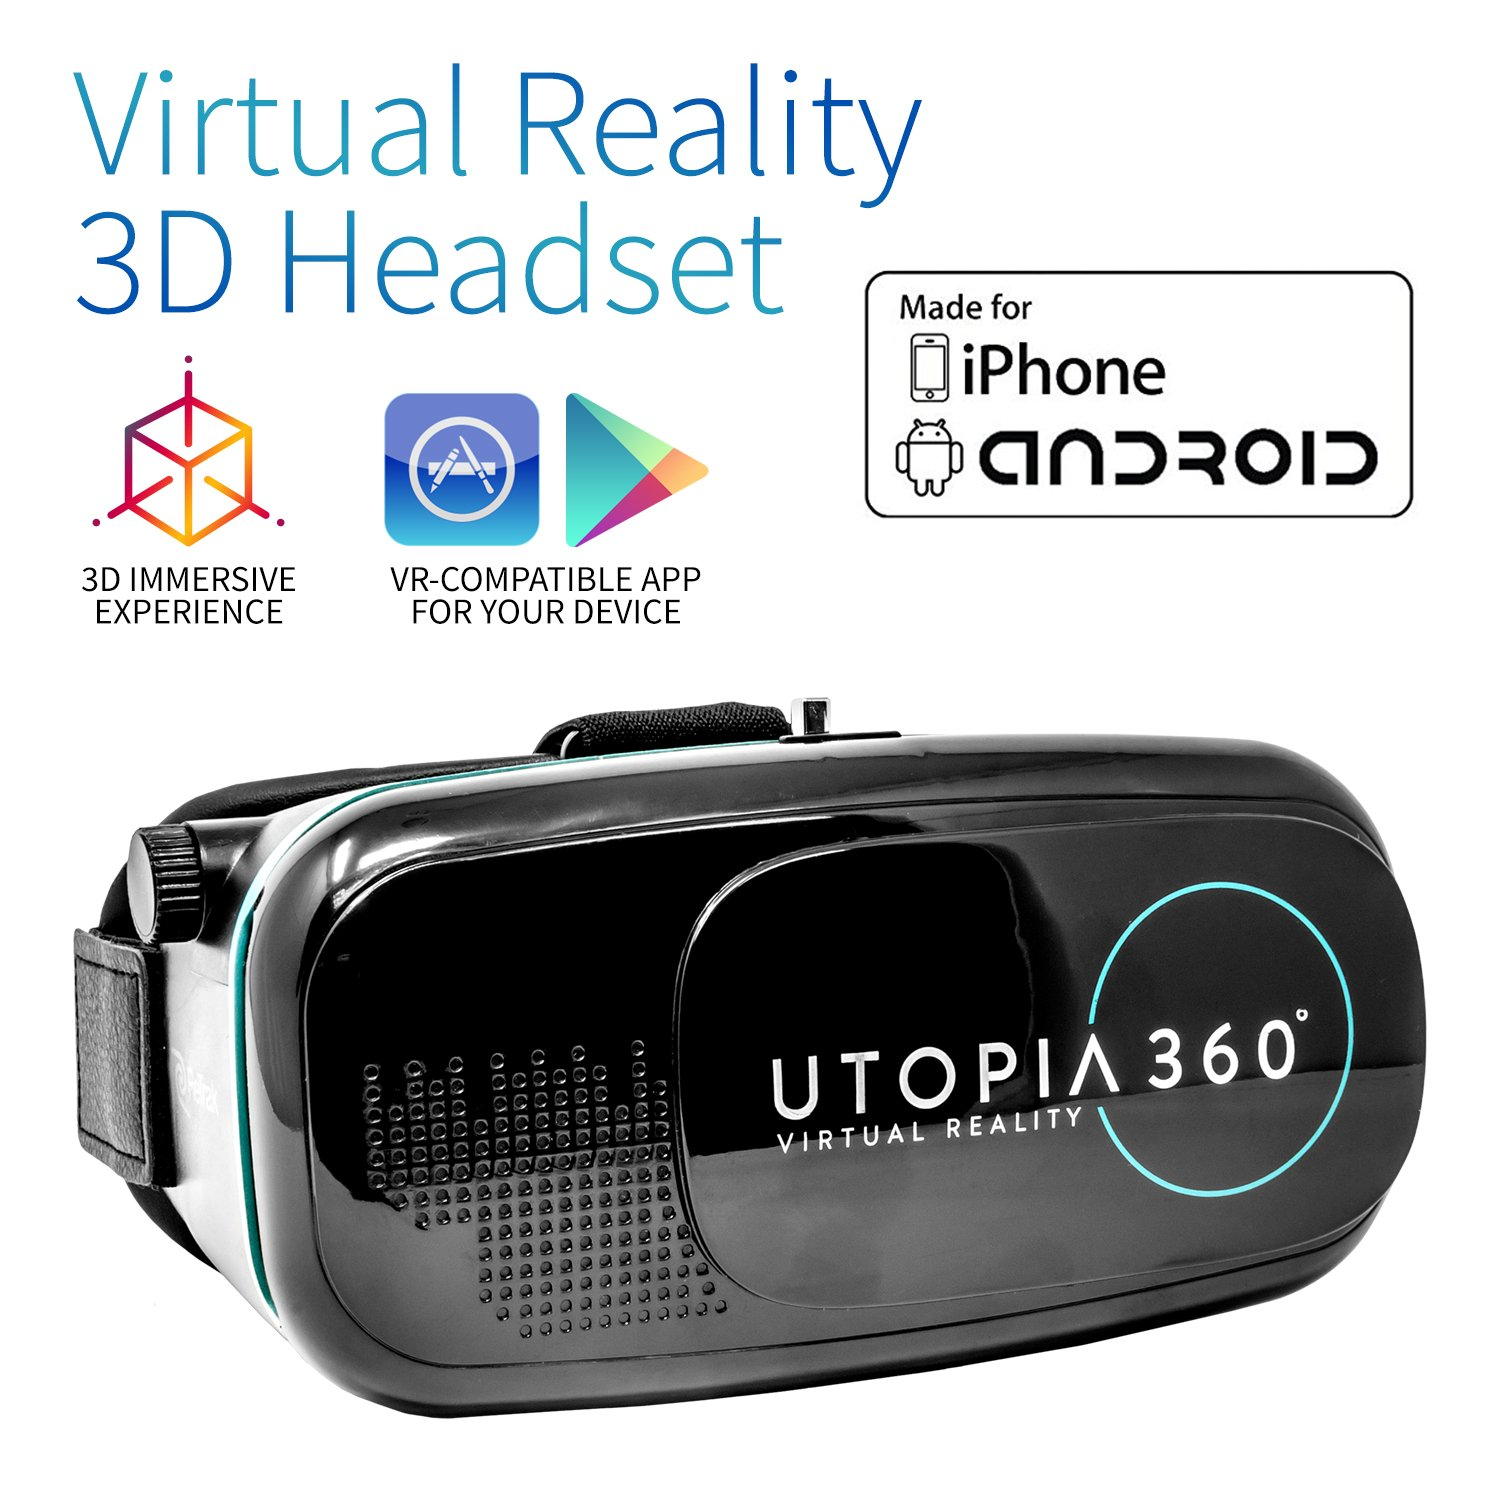 Utopia 360° VR Headset | 3D Virtual Reality Headset for VR Games, 3D Movies, and VR Apps - Compatible with iPhone and Android Smartphones (2018 Virtual Reality Headset Model)